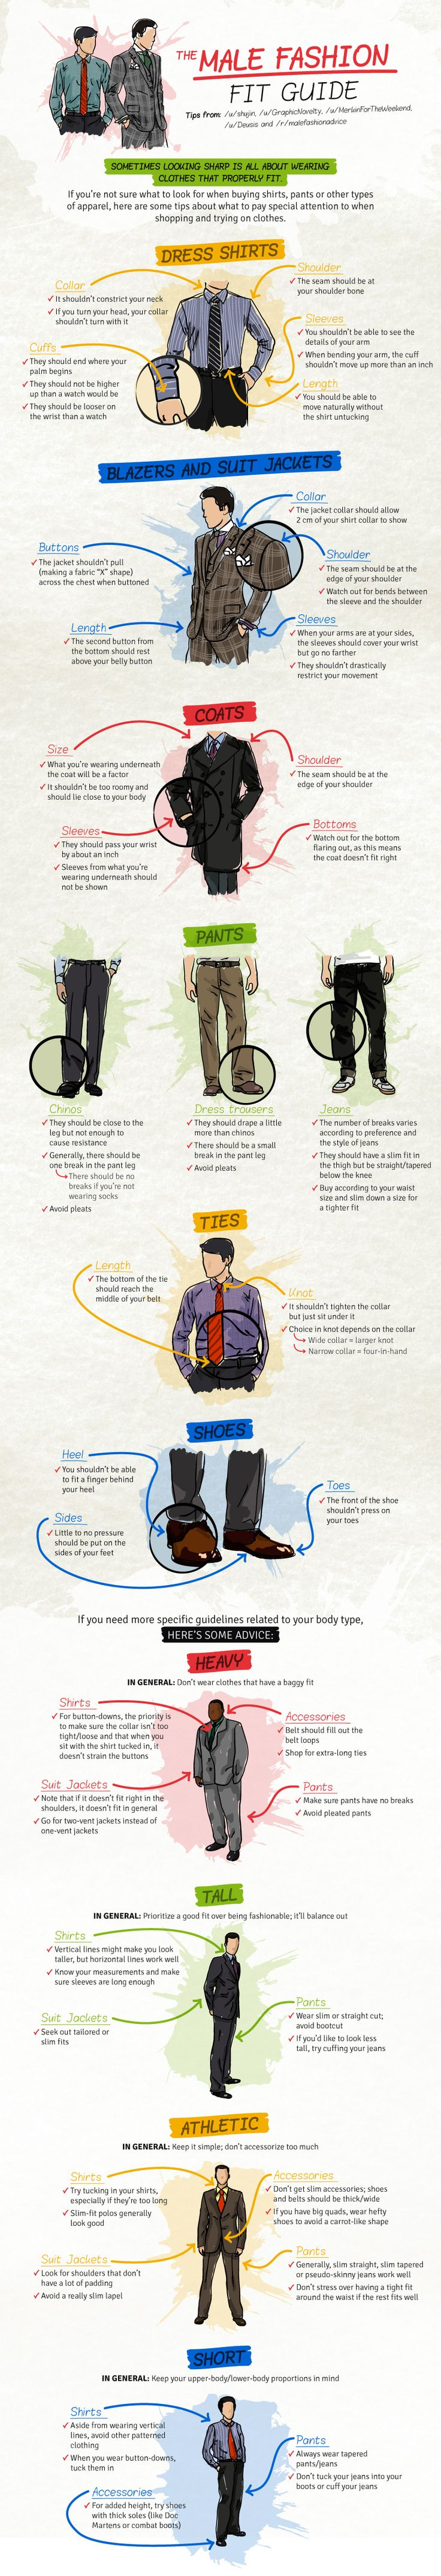 Everything You Need To Know About Men's Fashion In One Infographic (via BuzzFeed)